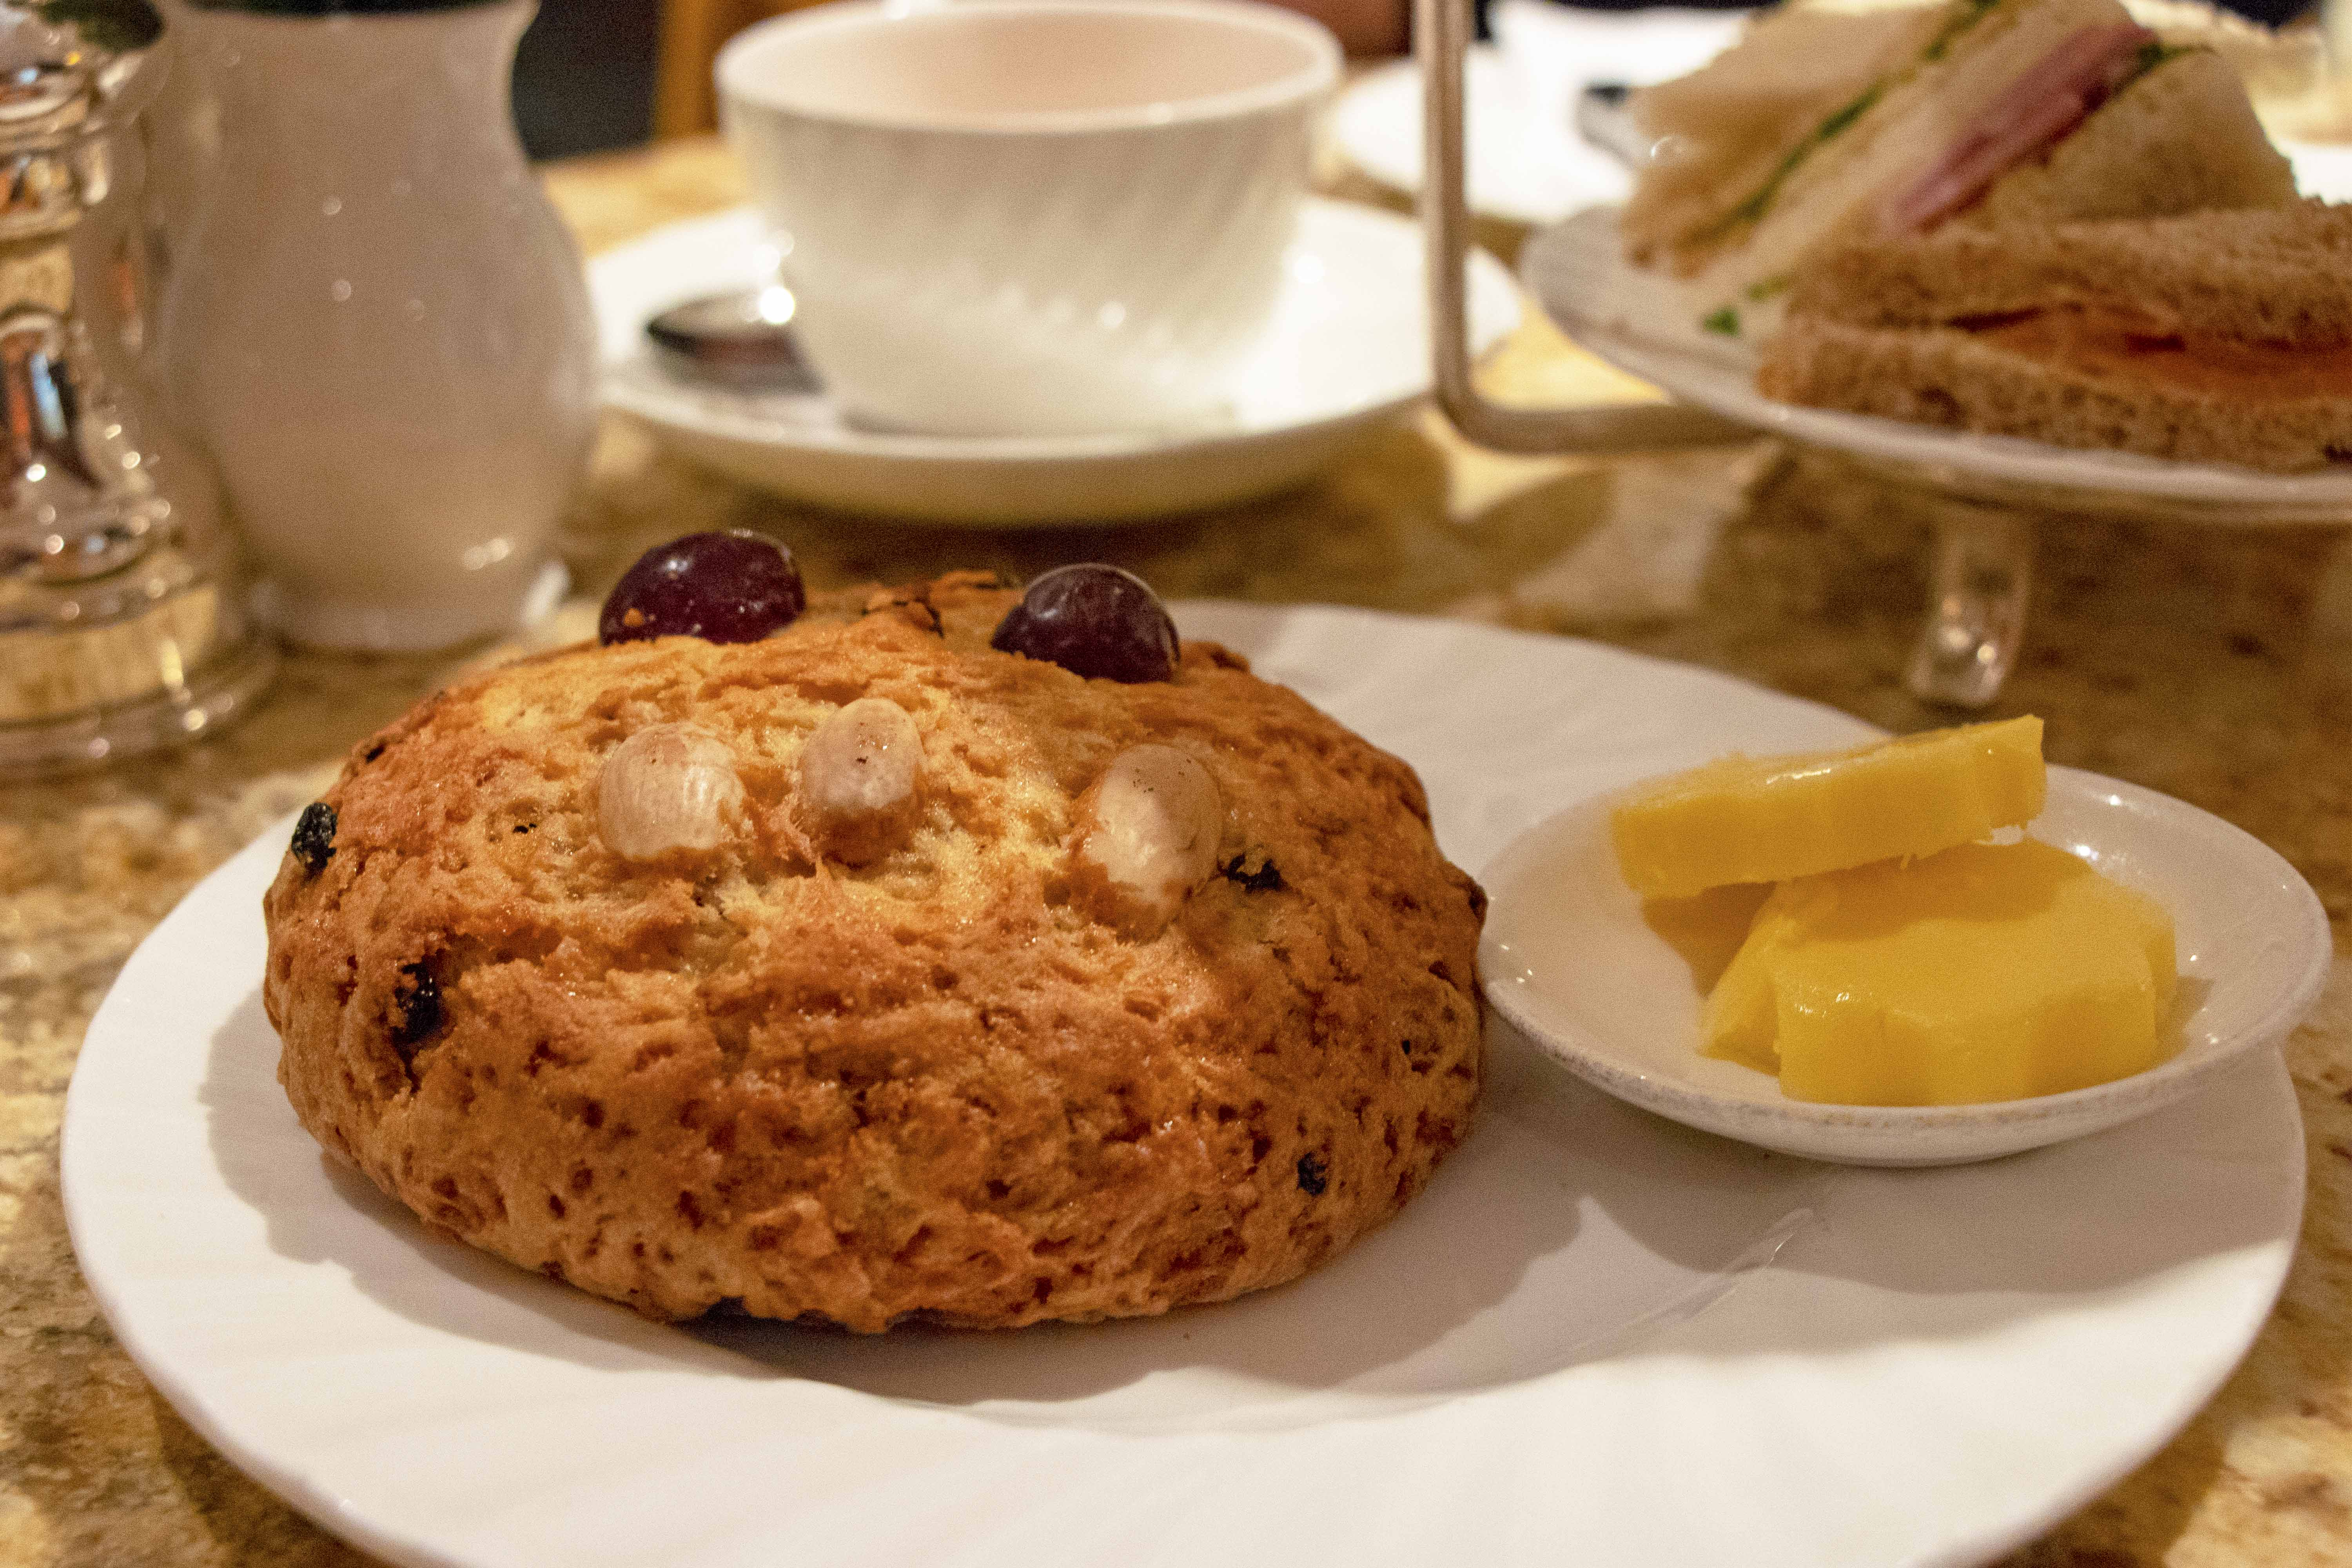 Yorkshire fat rascal from Bettys Tea Rooms